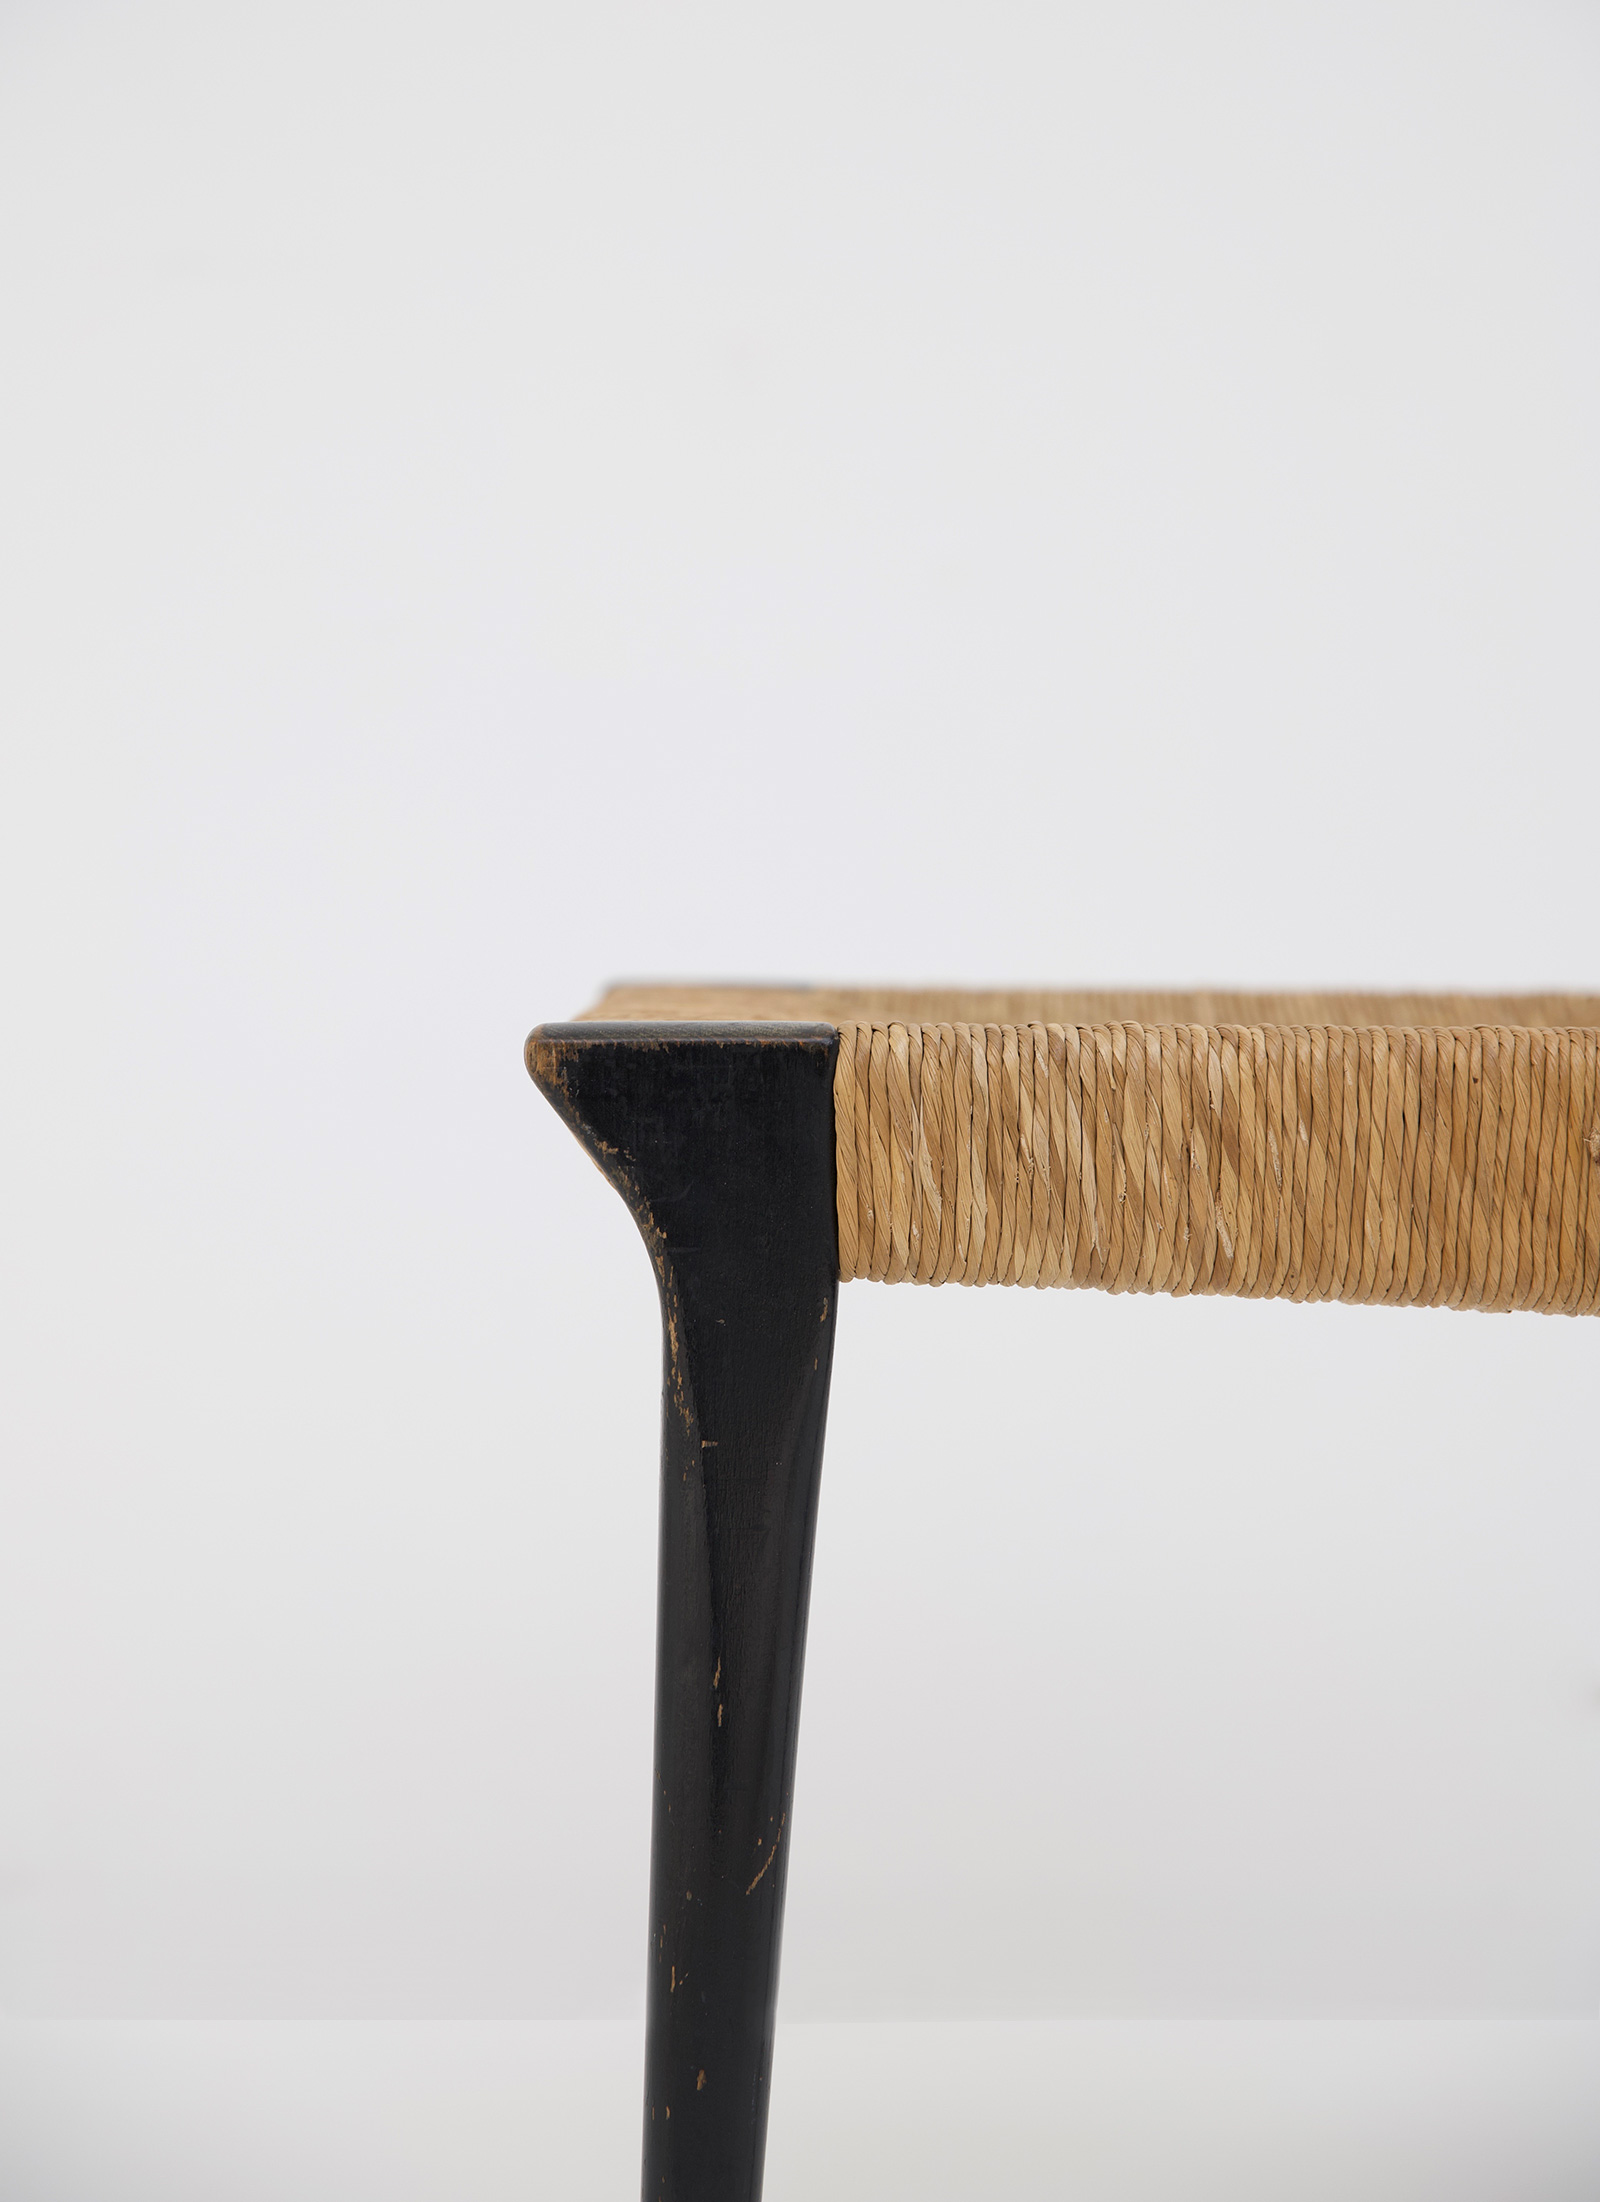 Alfred Hendrickx Woven Cane S2 Chairsimage 6